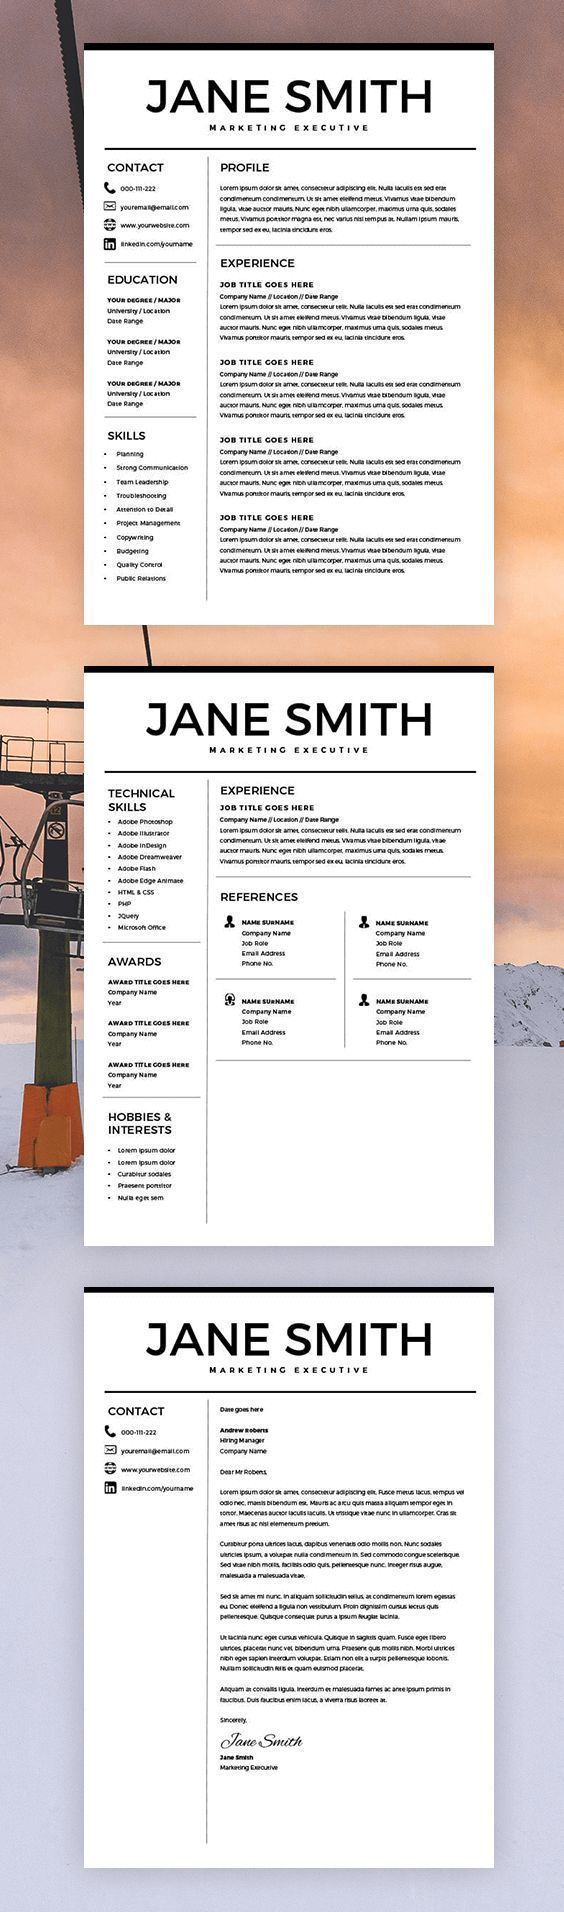 Best Resume Templates Free Resume For Microsoft Word  Minimal Resume Template  Cv Template